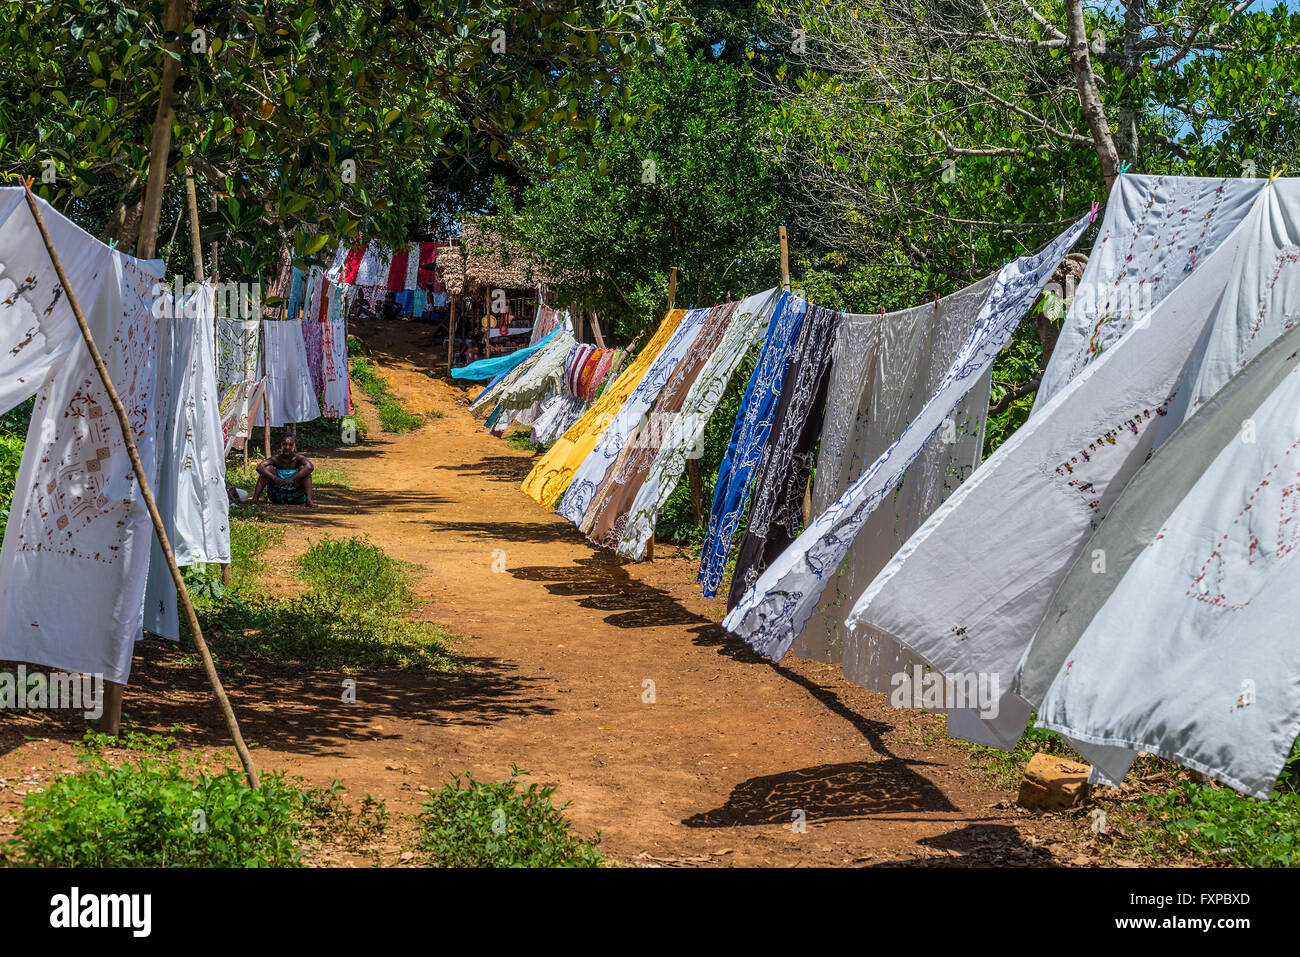 Selling embroidered tablecloths in the rural village of the Ampasipohy, Nosy Be - Stock Image